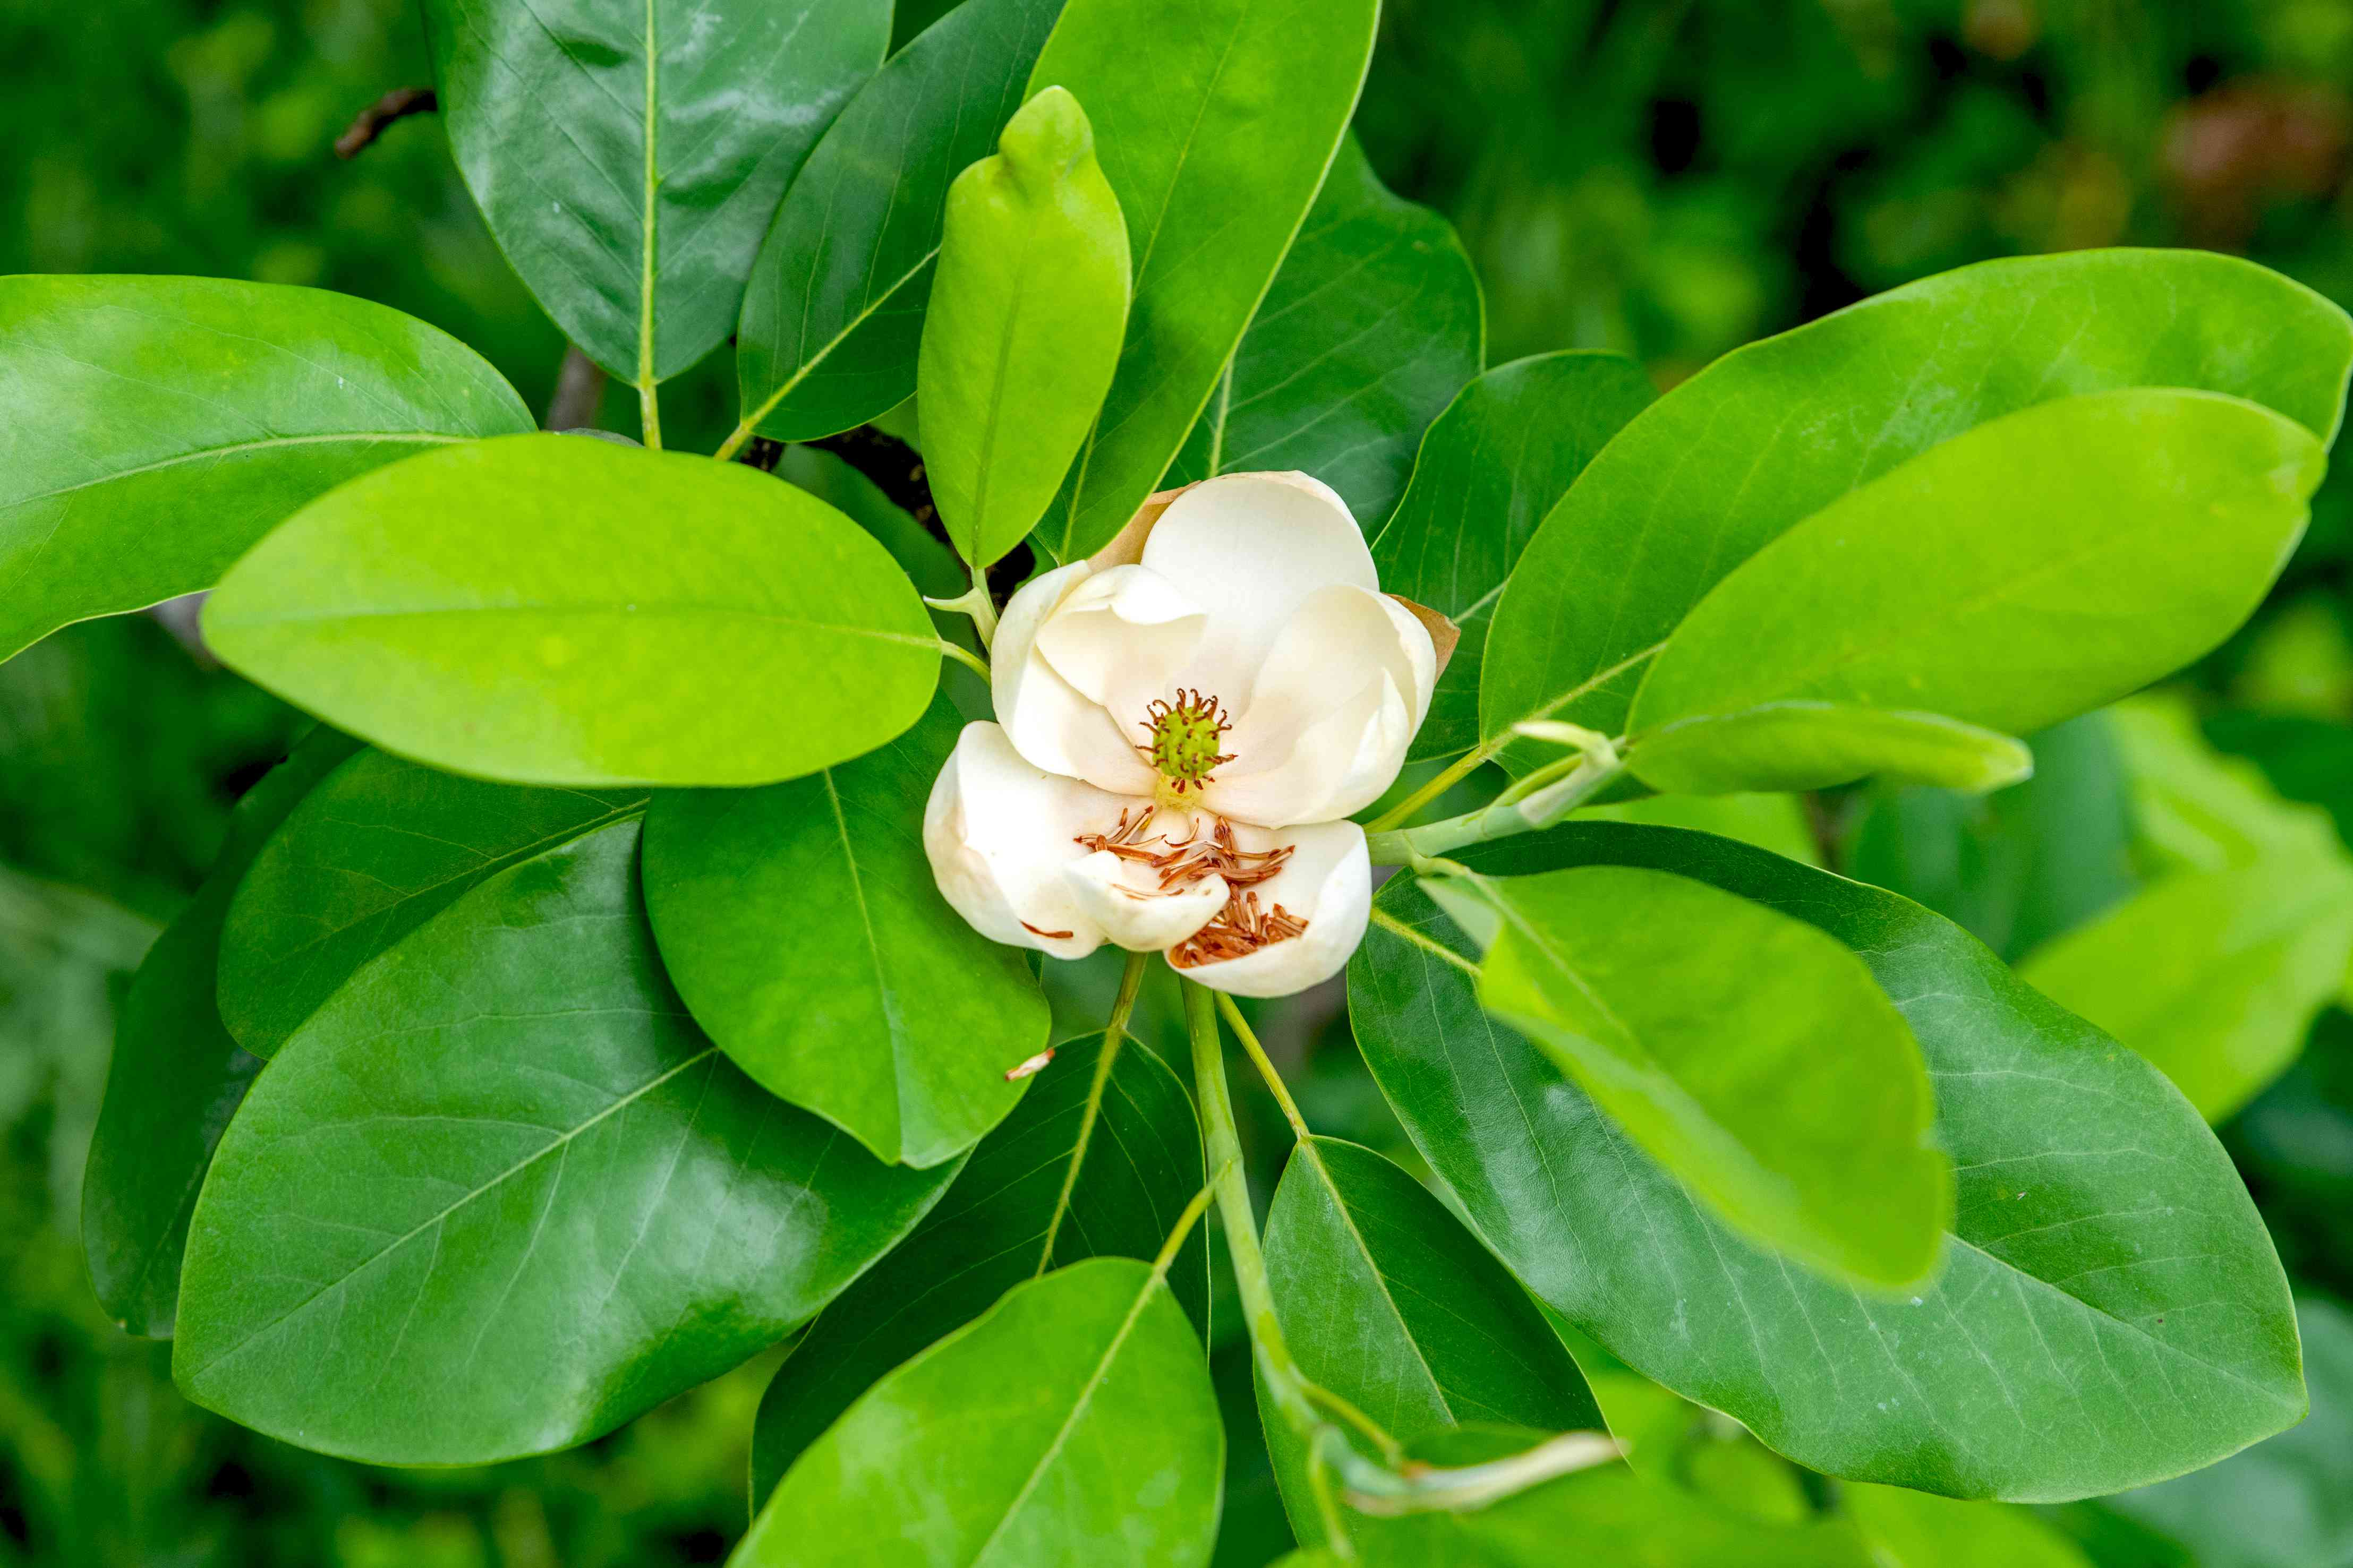 Sweetbay magnolia tree branch with lance-shaped leaves surrounding white flower in center